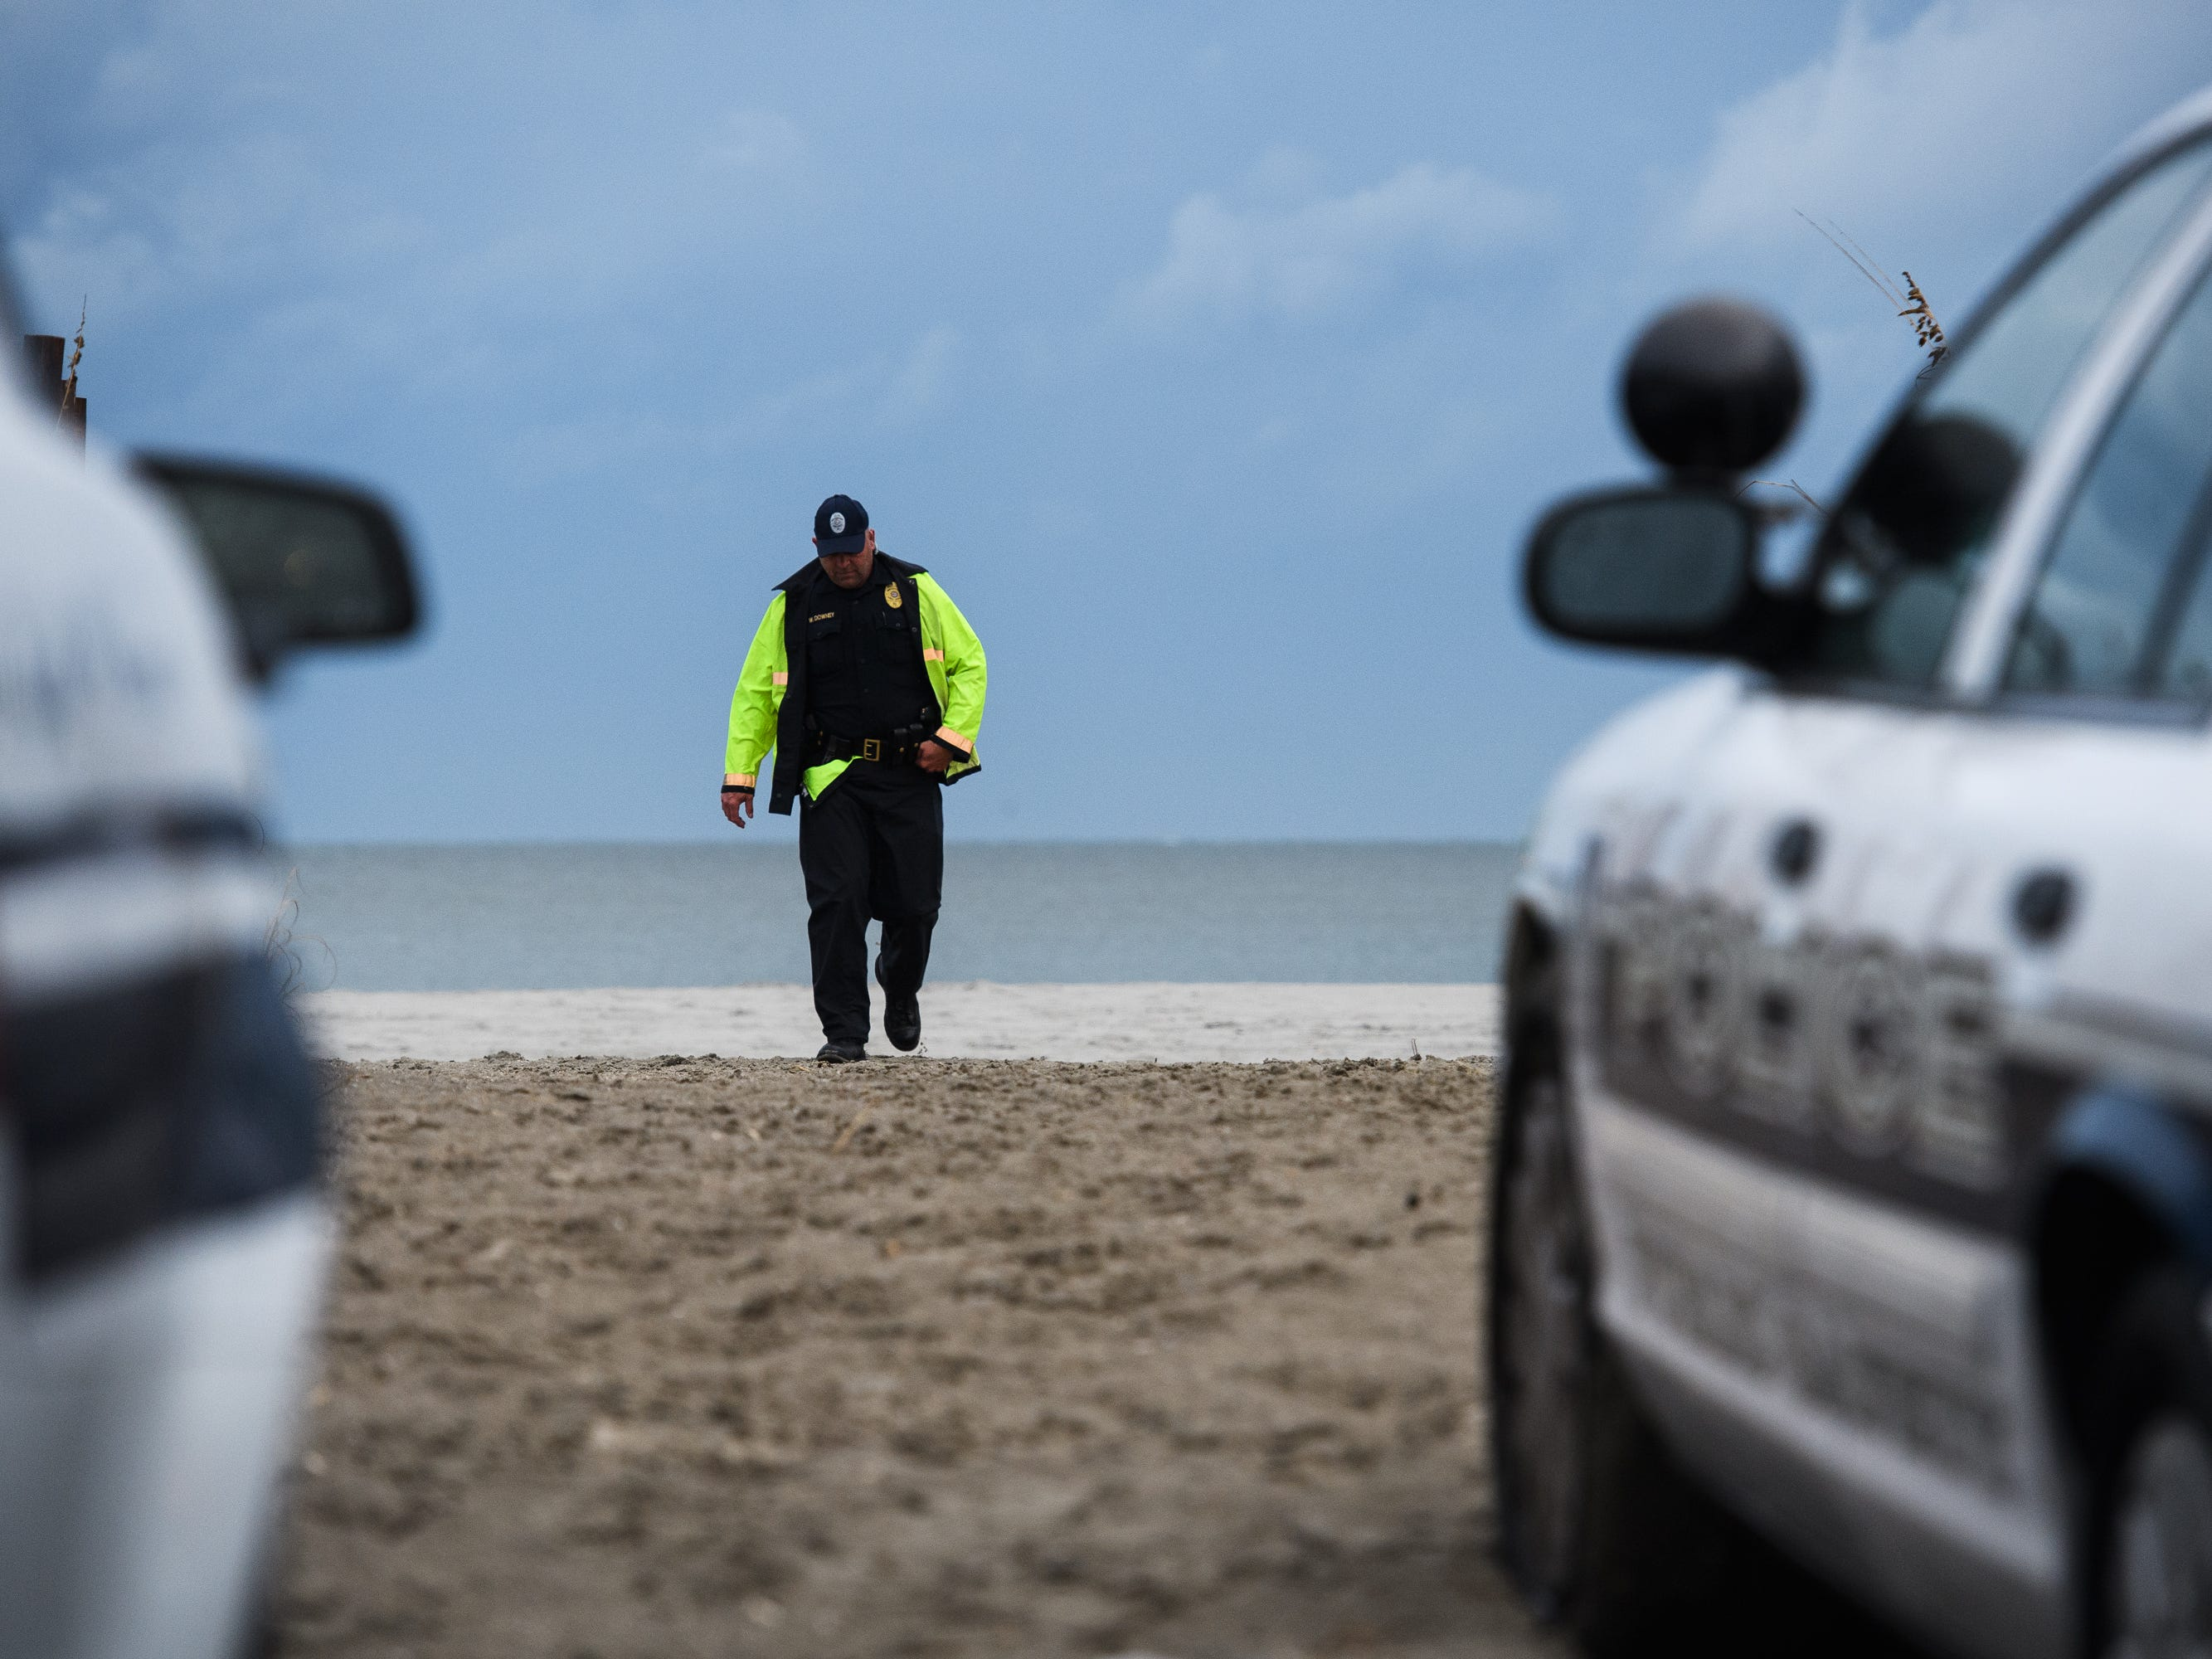 A North Myrtle Beach public safety officer walks back to his vehicle after informing beachgoers of a 7 p.m. curfew due to the arrival of Hurricane Florence on Thursday, Sept. 13, 2018.